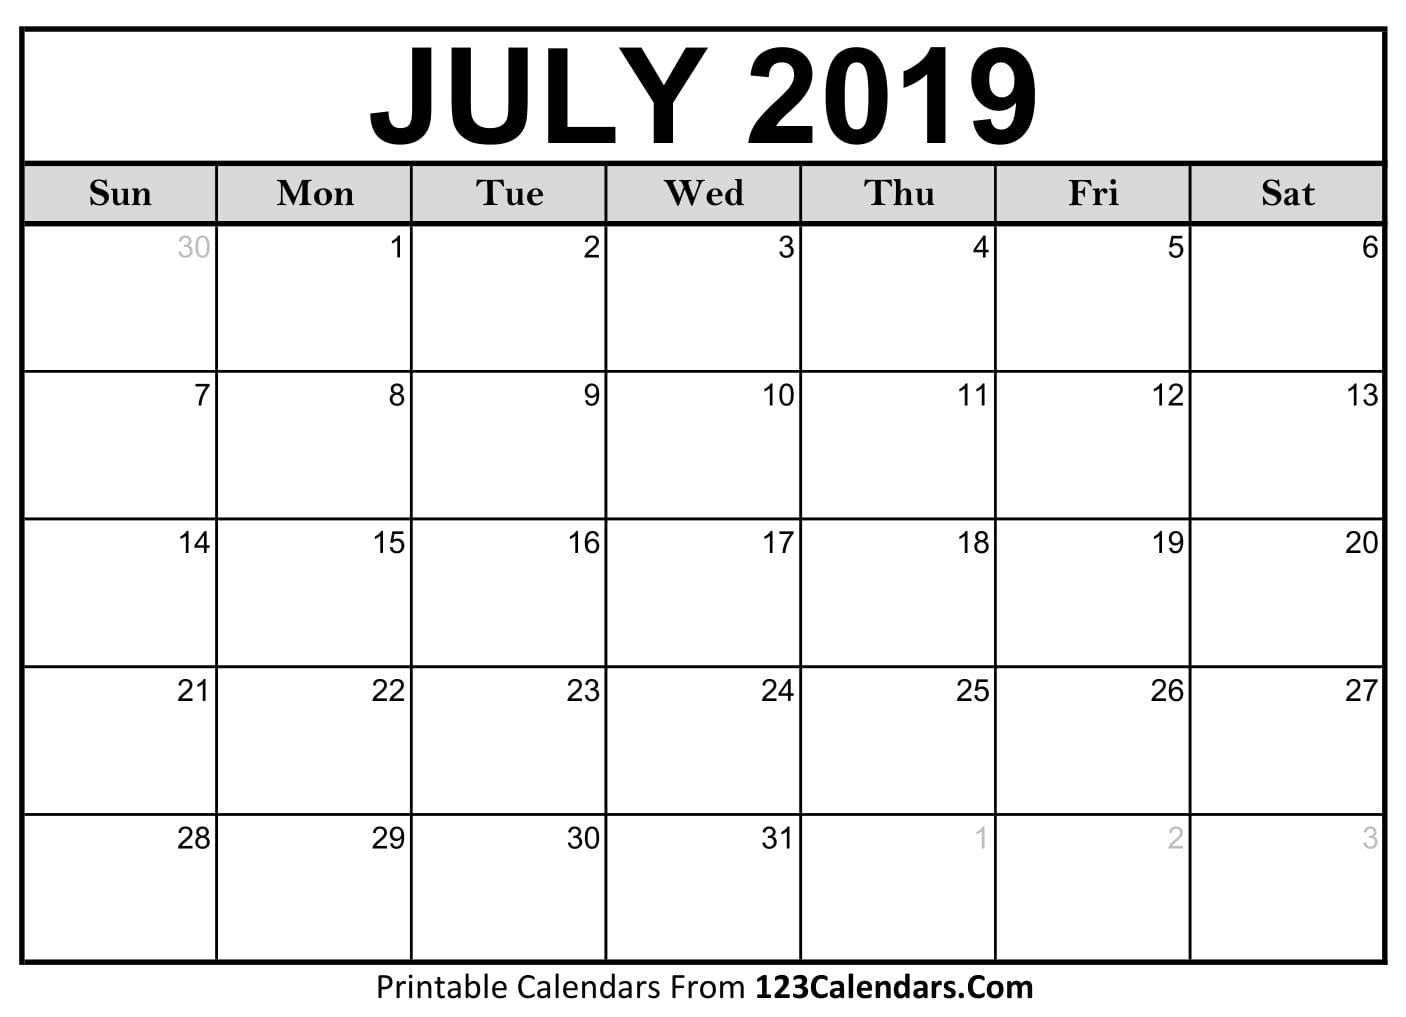 July 2019 Printable Calendar | 123Calendars with Blank July Monthly Calendar